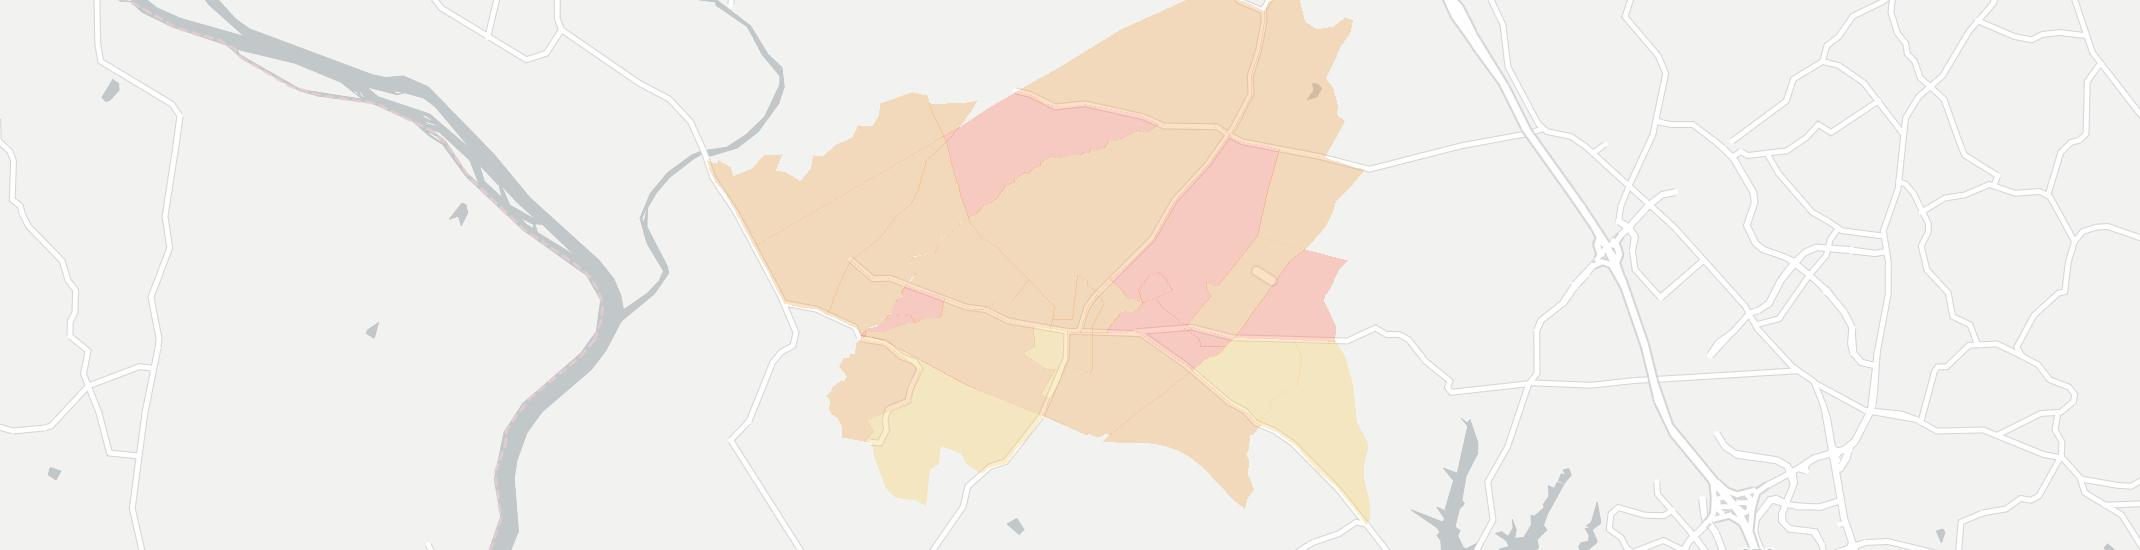 Barnesville Internet Competition Map. Click for interactive map.